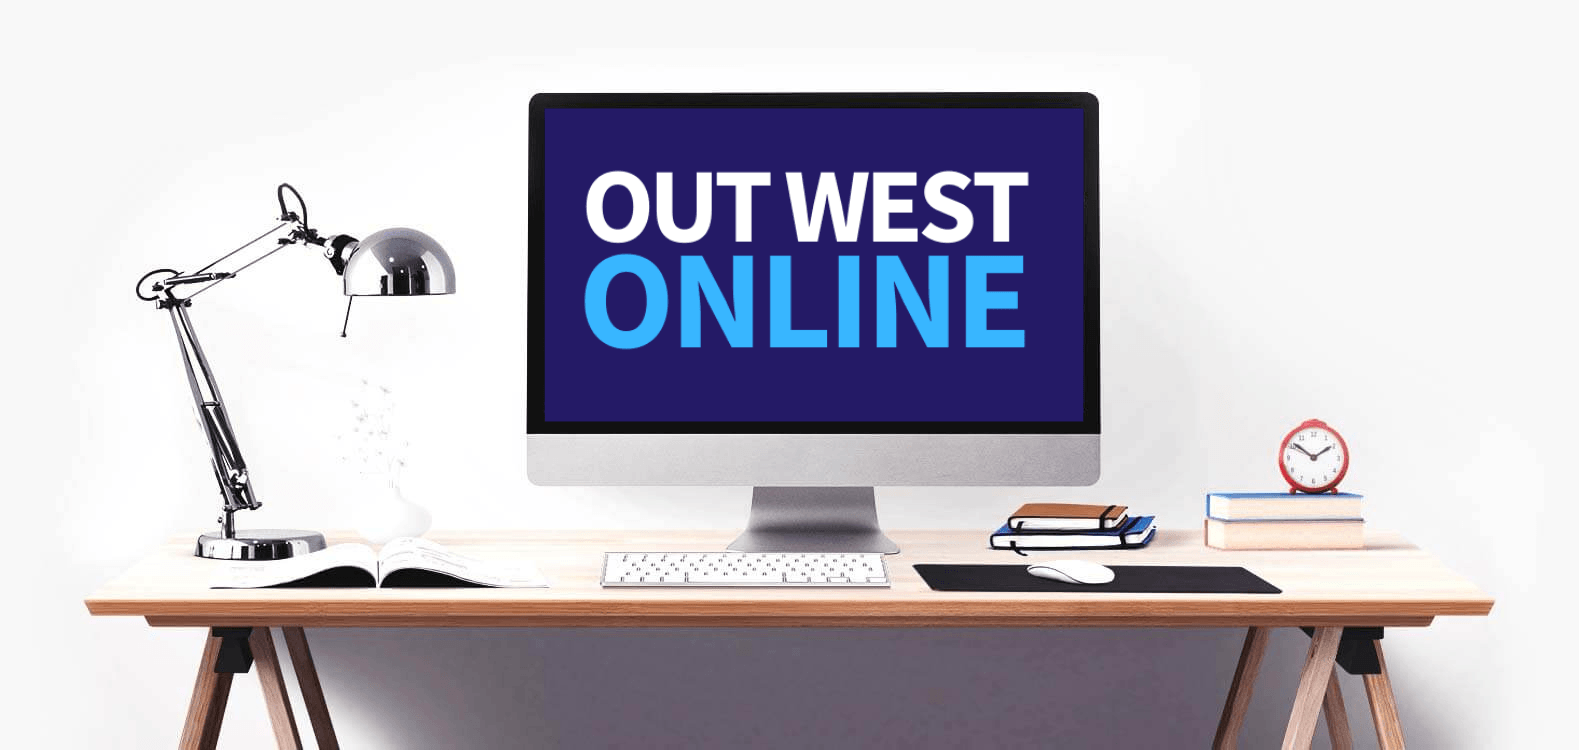 Out West Online